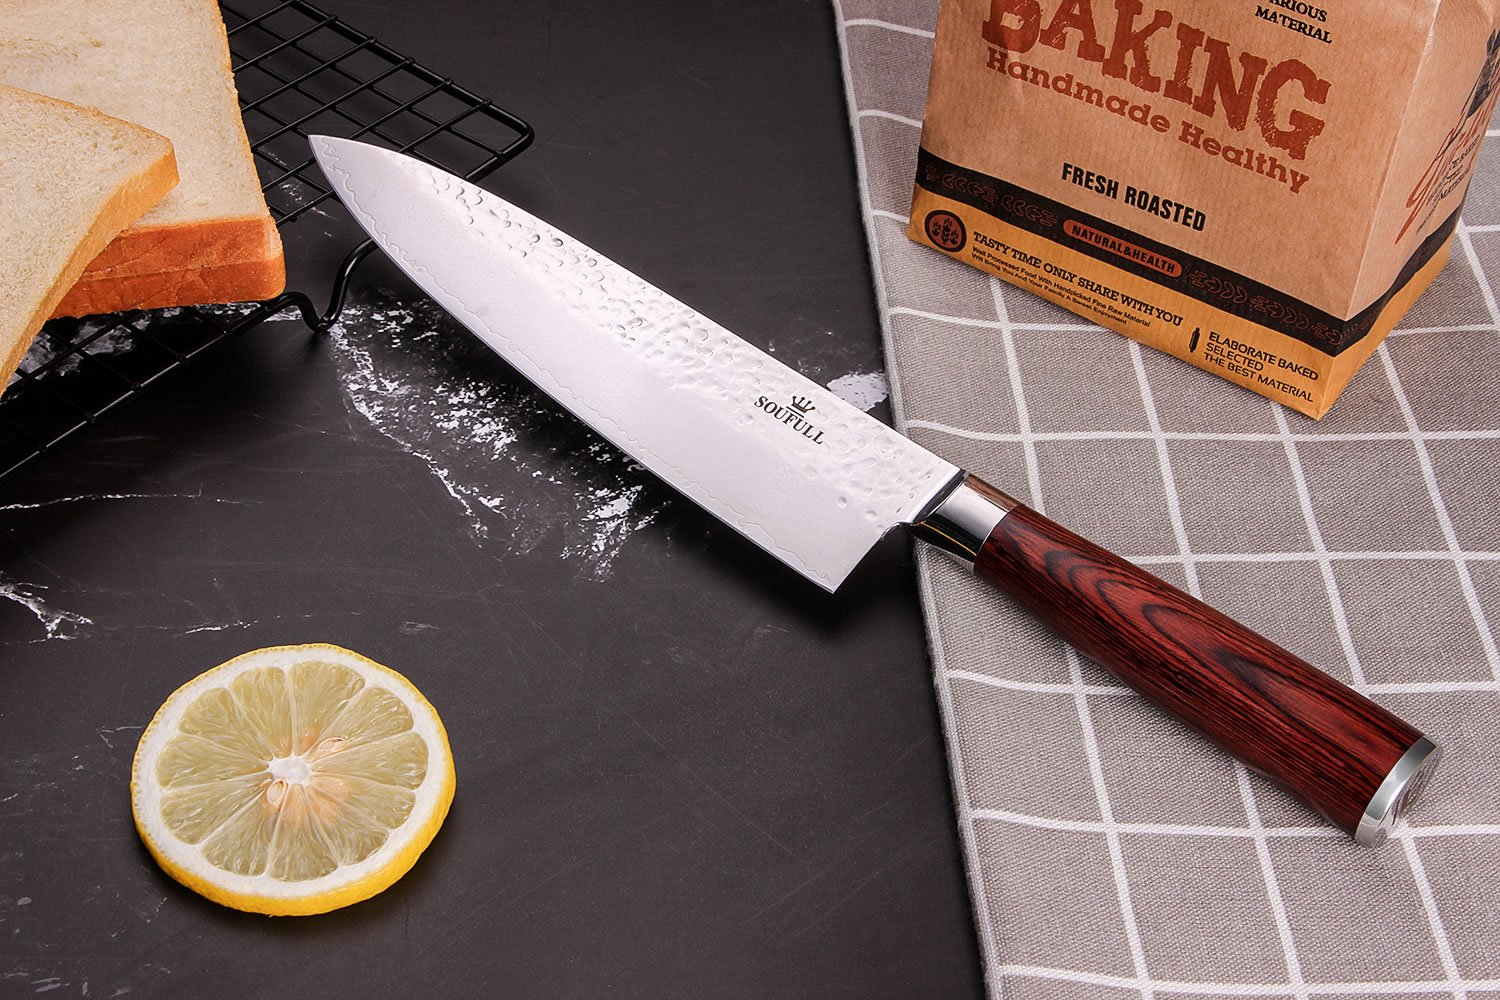 Damascus Chef Knife -Soufull 8 inch Knife Japanese VG10 Razor Sharp Well-Balanced - Stain & Corrosion Resistant Kitchen Knife - Professional Chefs Knives by Soufull (Image #6)